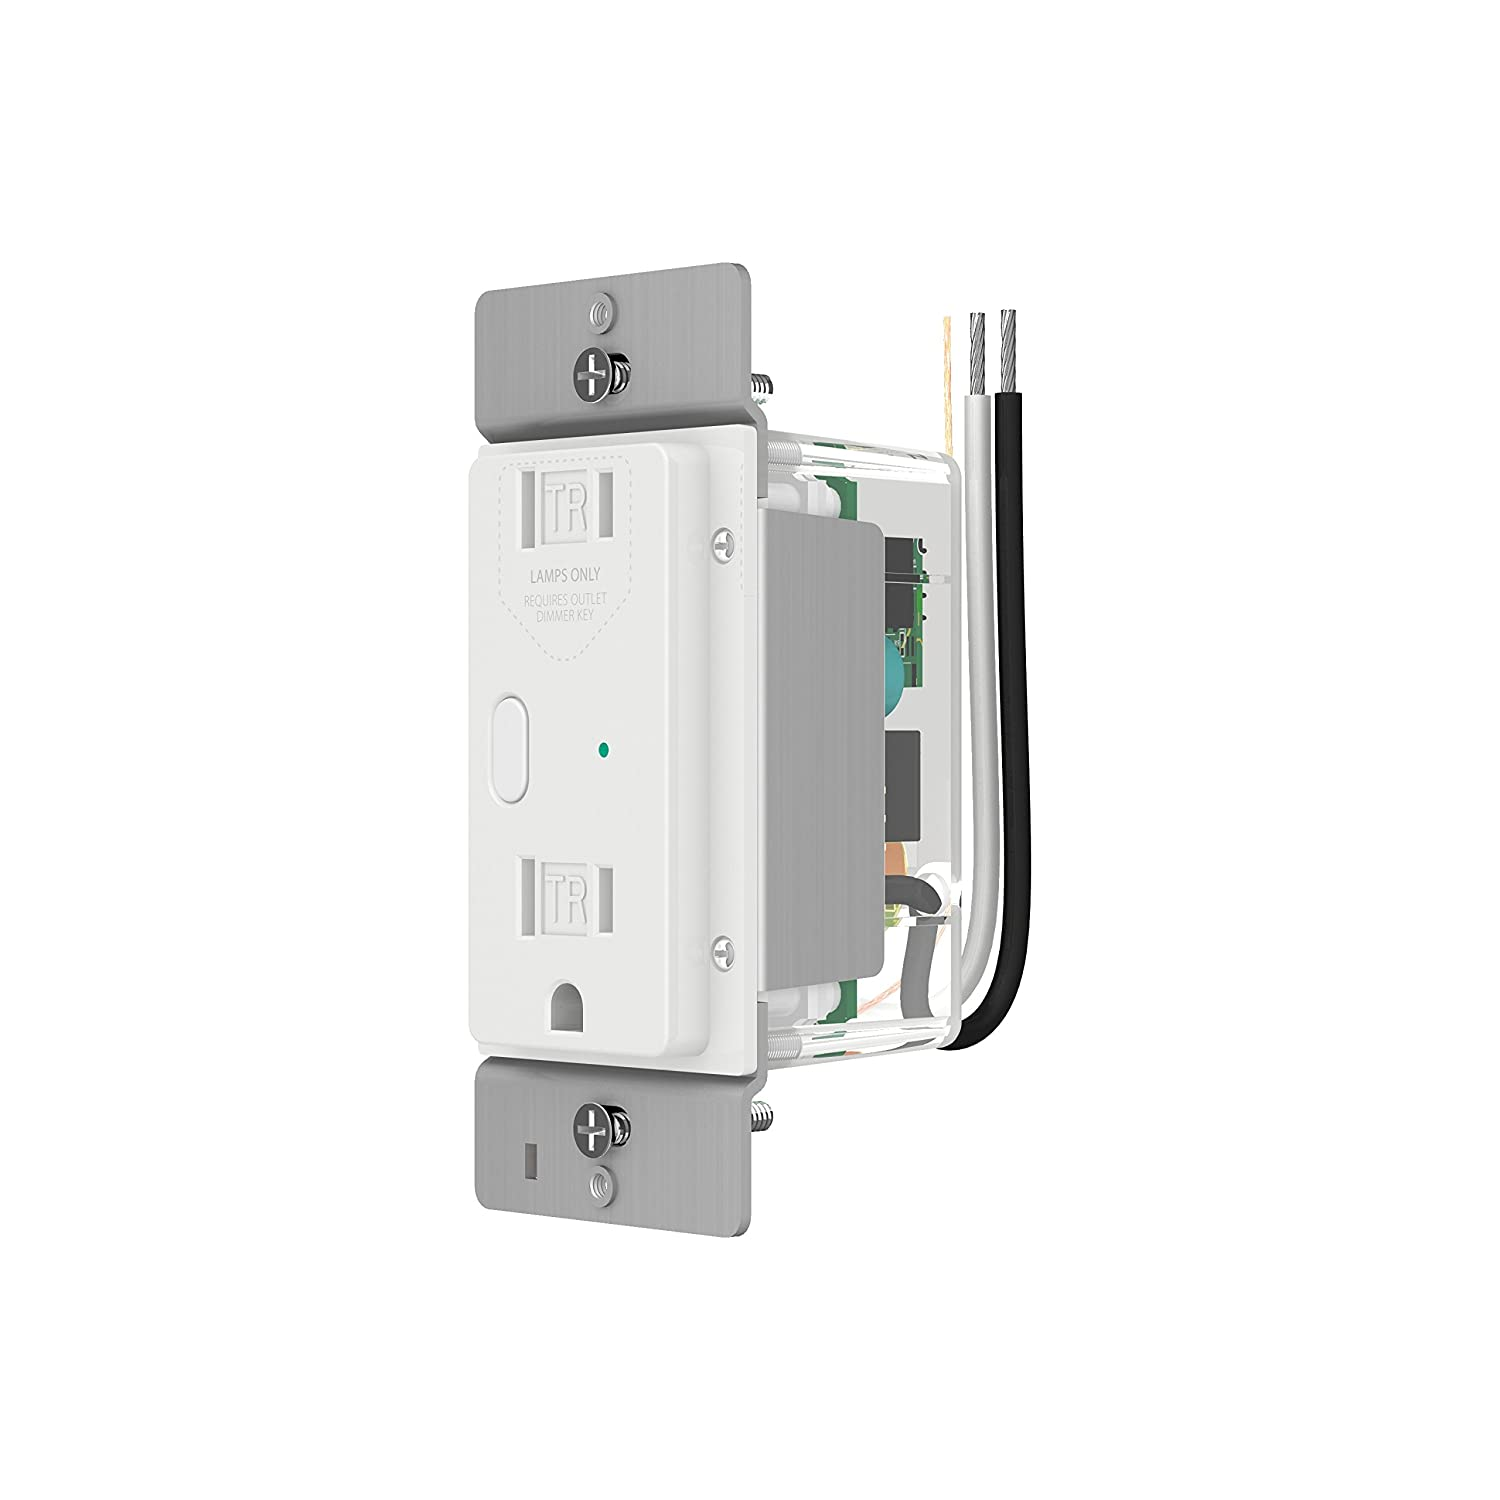 Insteon 2472dwh Outletlinc Dimmer Remote Control Outlet Dual Band Switchlinc On Off Switch Dualband White Tools Home Improvement